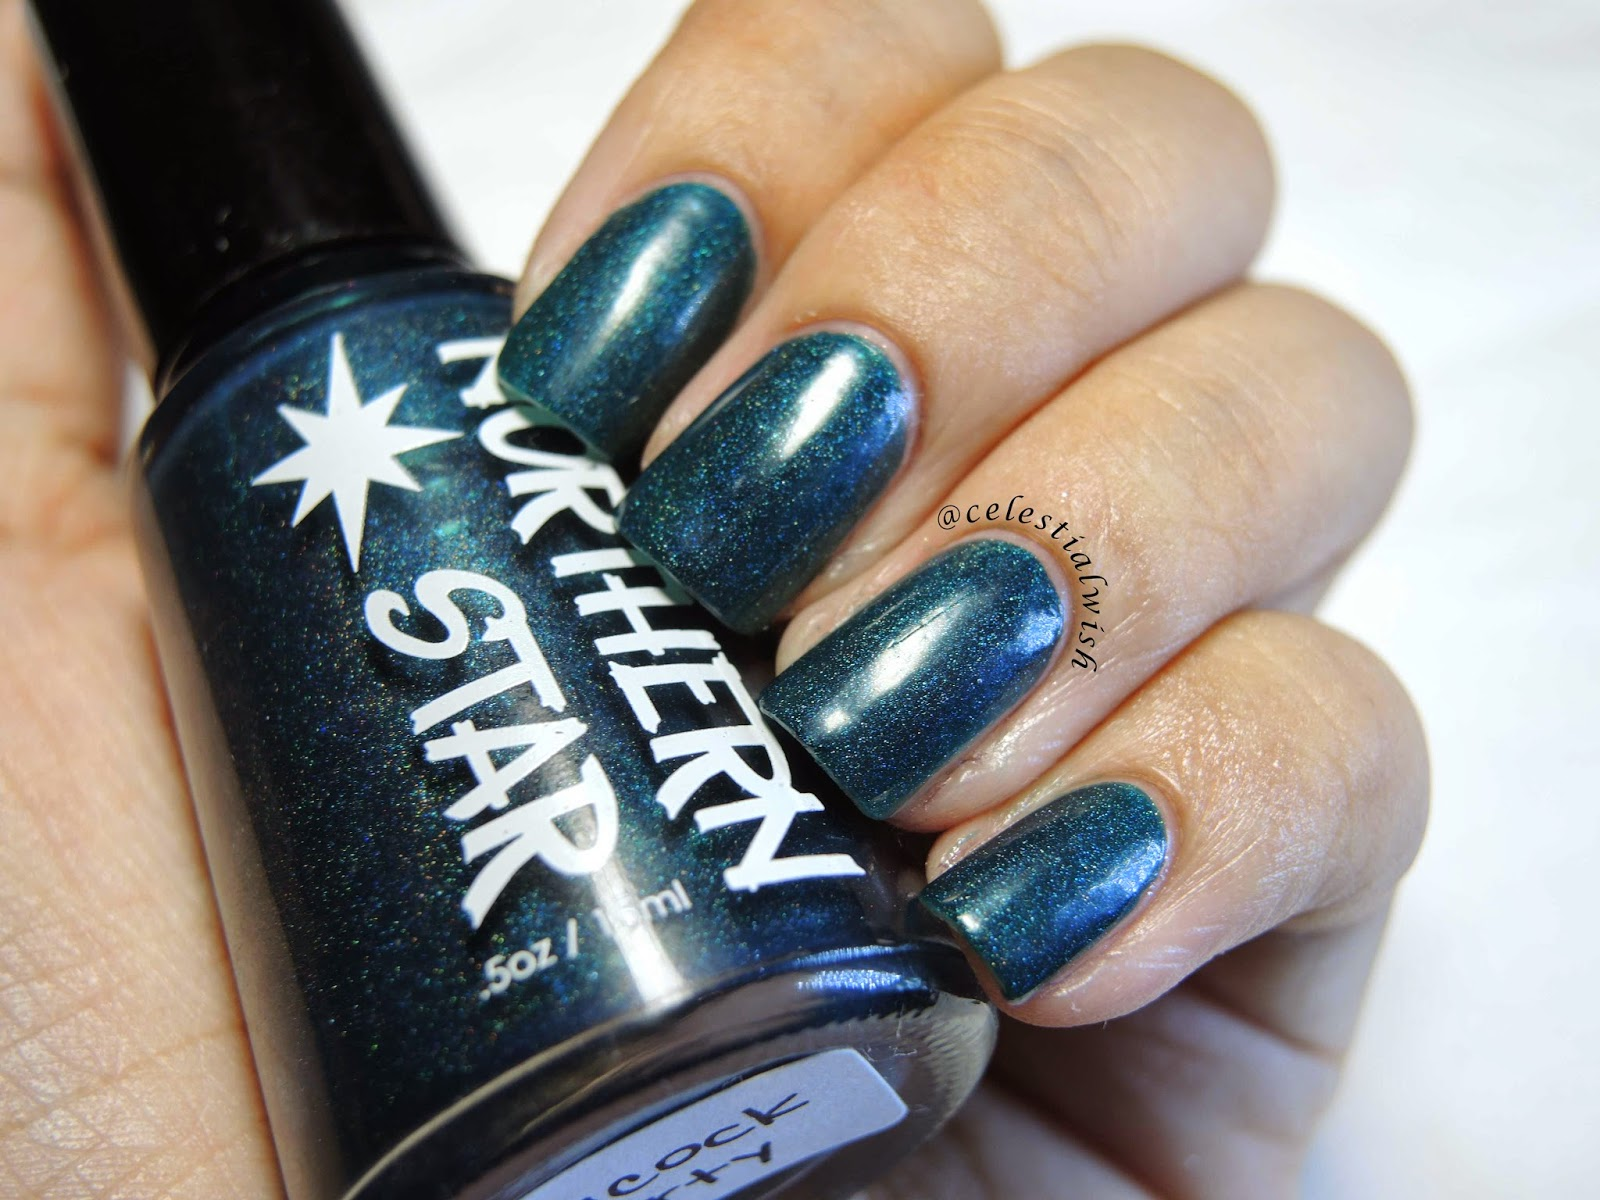 Northern Star Polish's Peacock Party